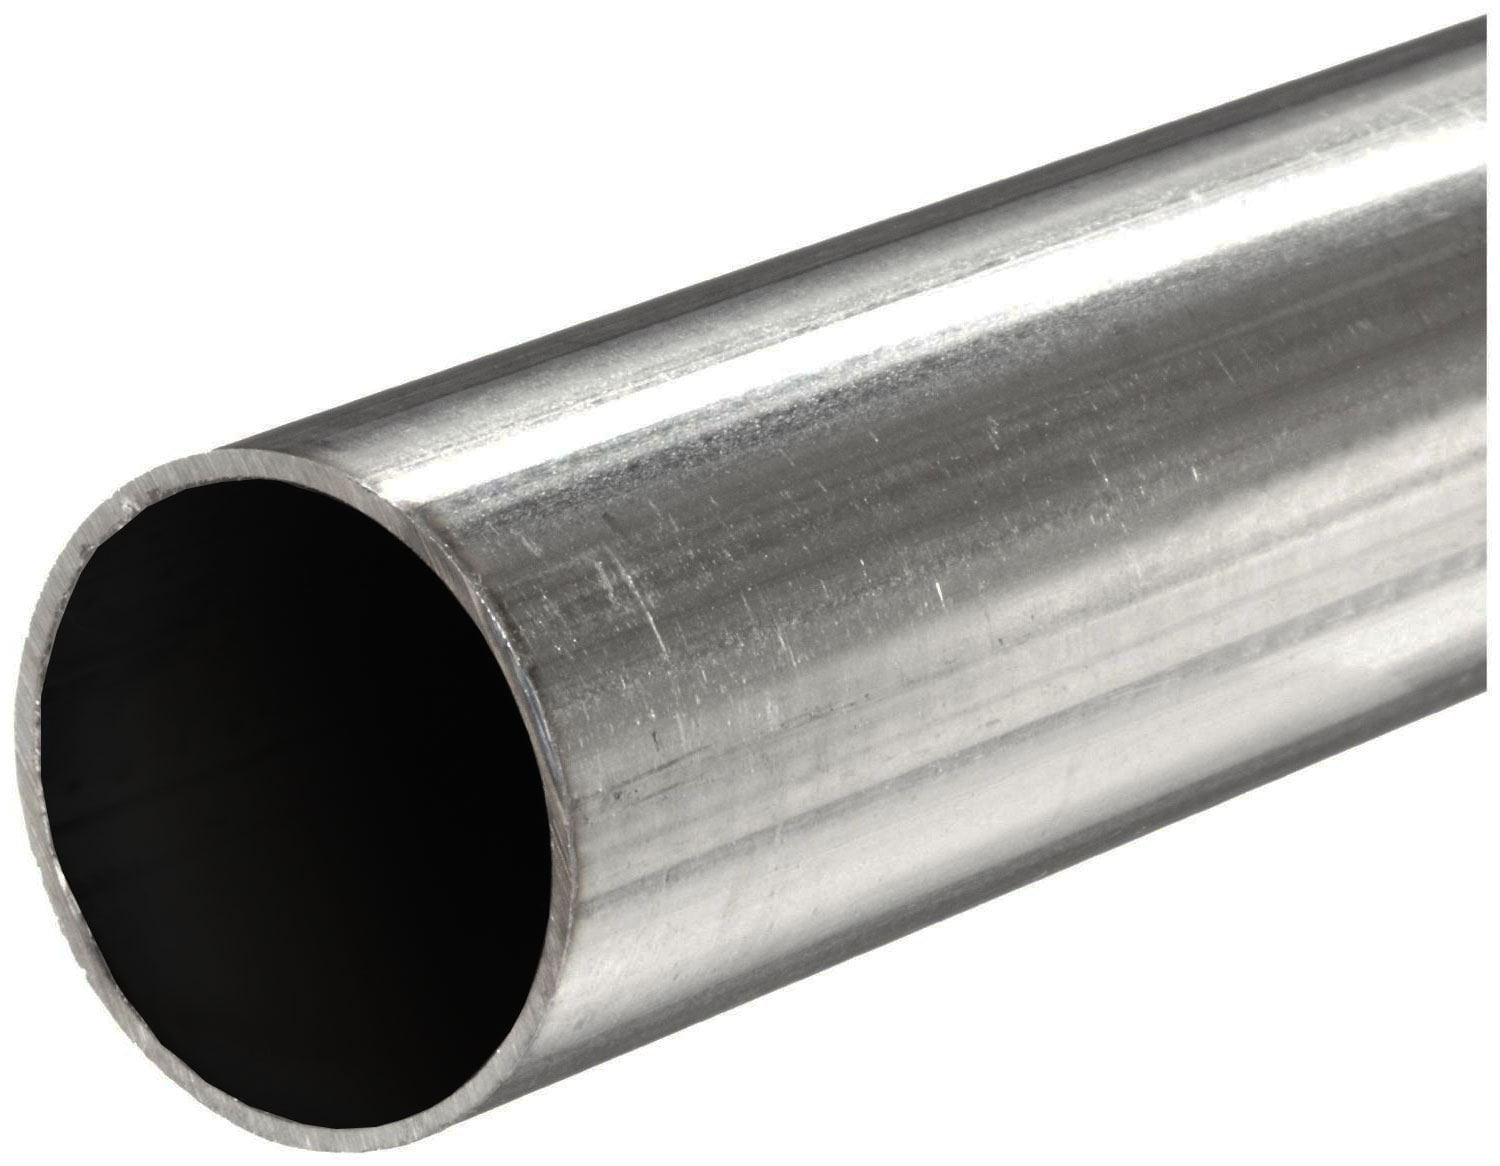 316 Stainless Steel, Round Tube, OD: 2 750 (2 -3/4 inch), Wall: 0 049 inch,  Length: 12 inches, Welded